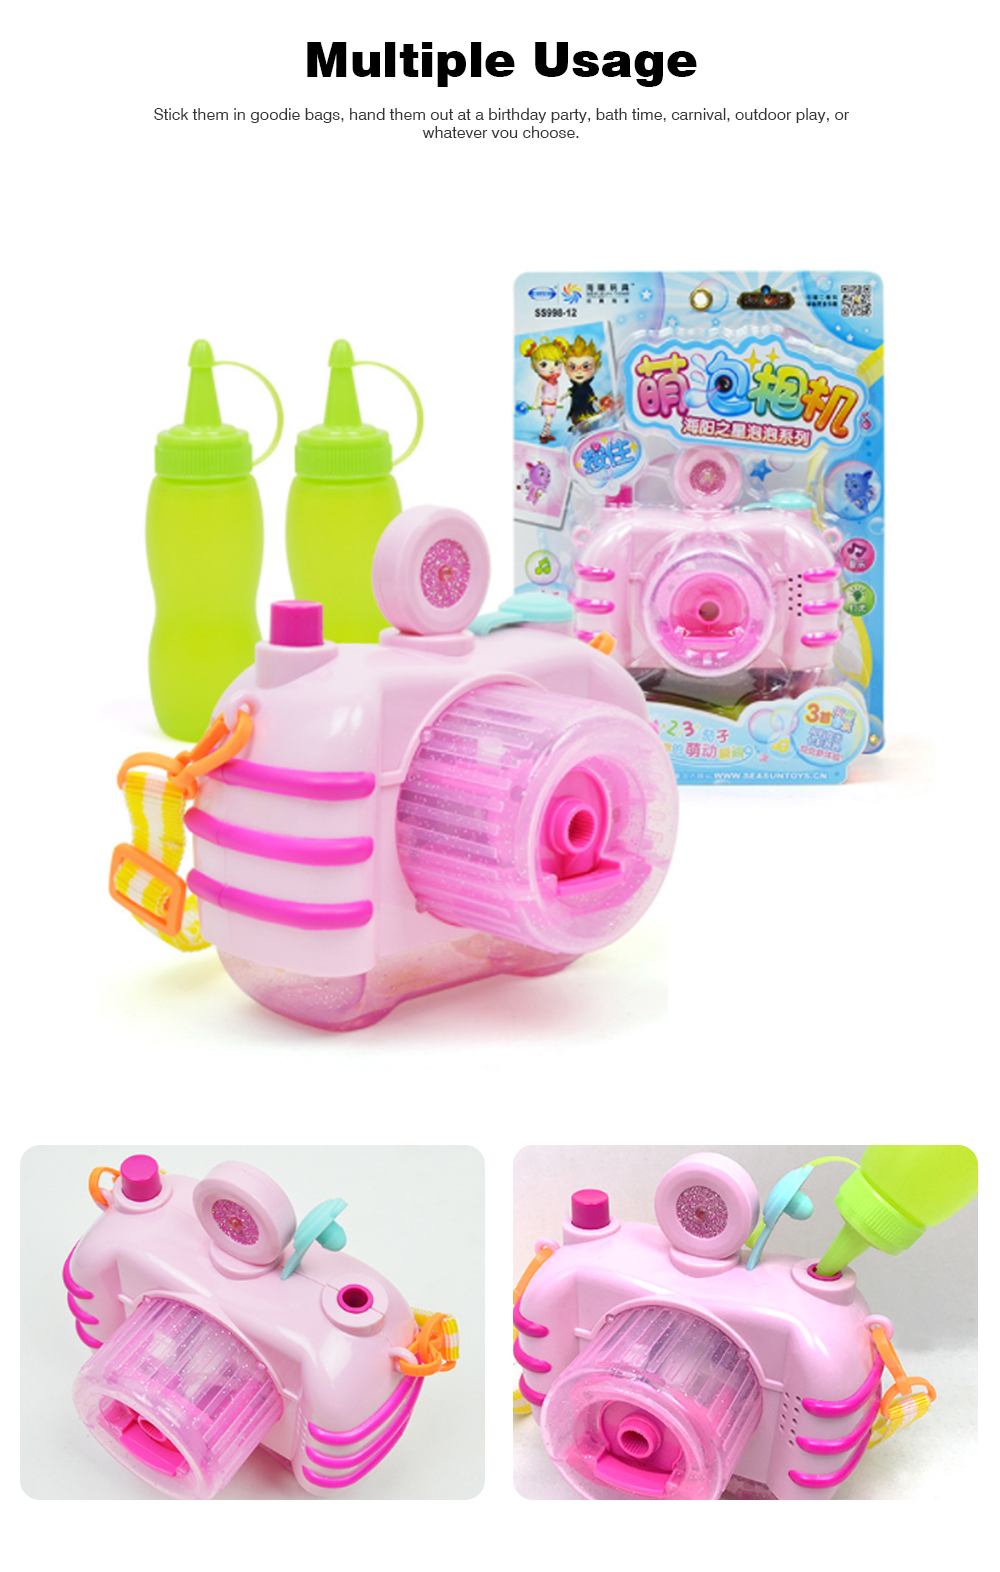 Sea Star Bubble Camera Light Music Electric Blowing Bubble Square Toy for Children to Play 6